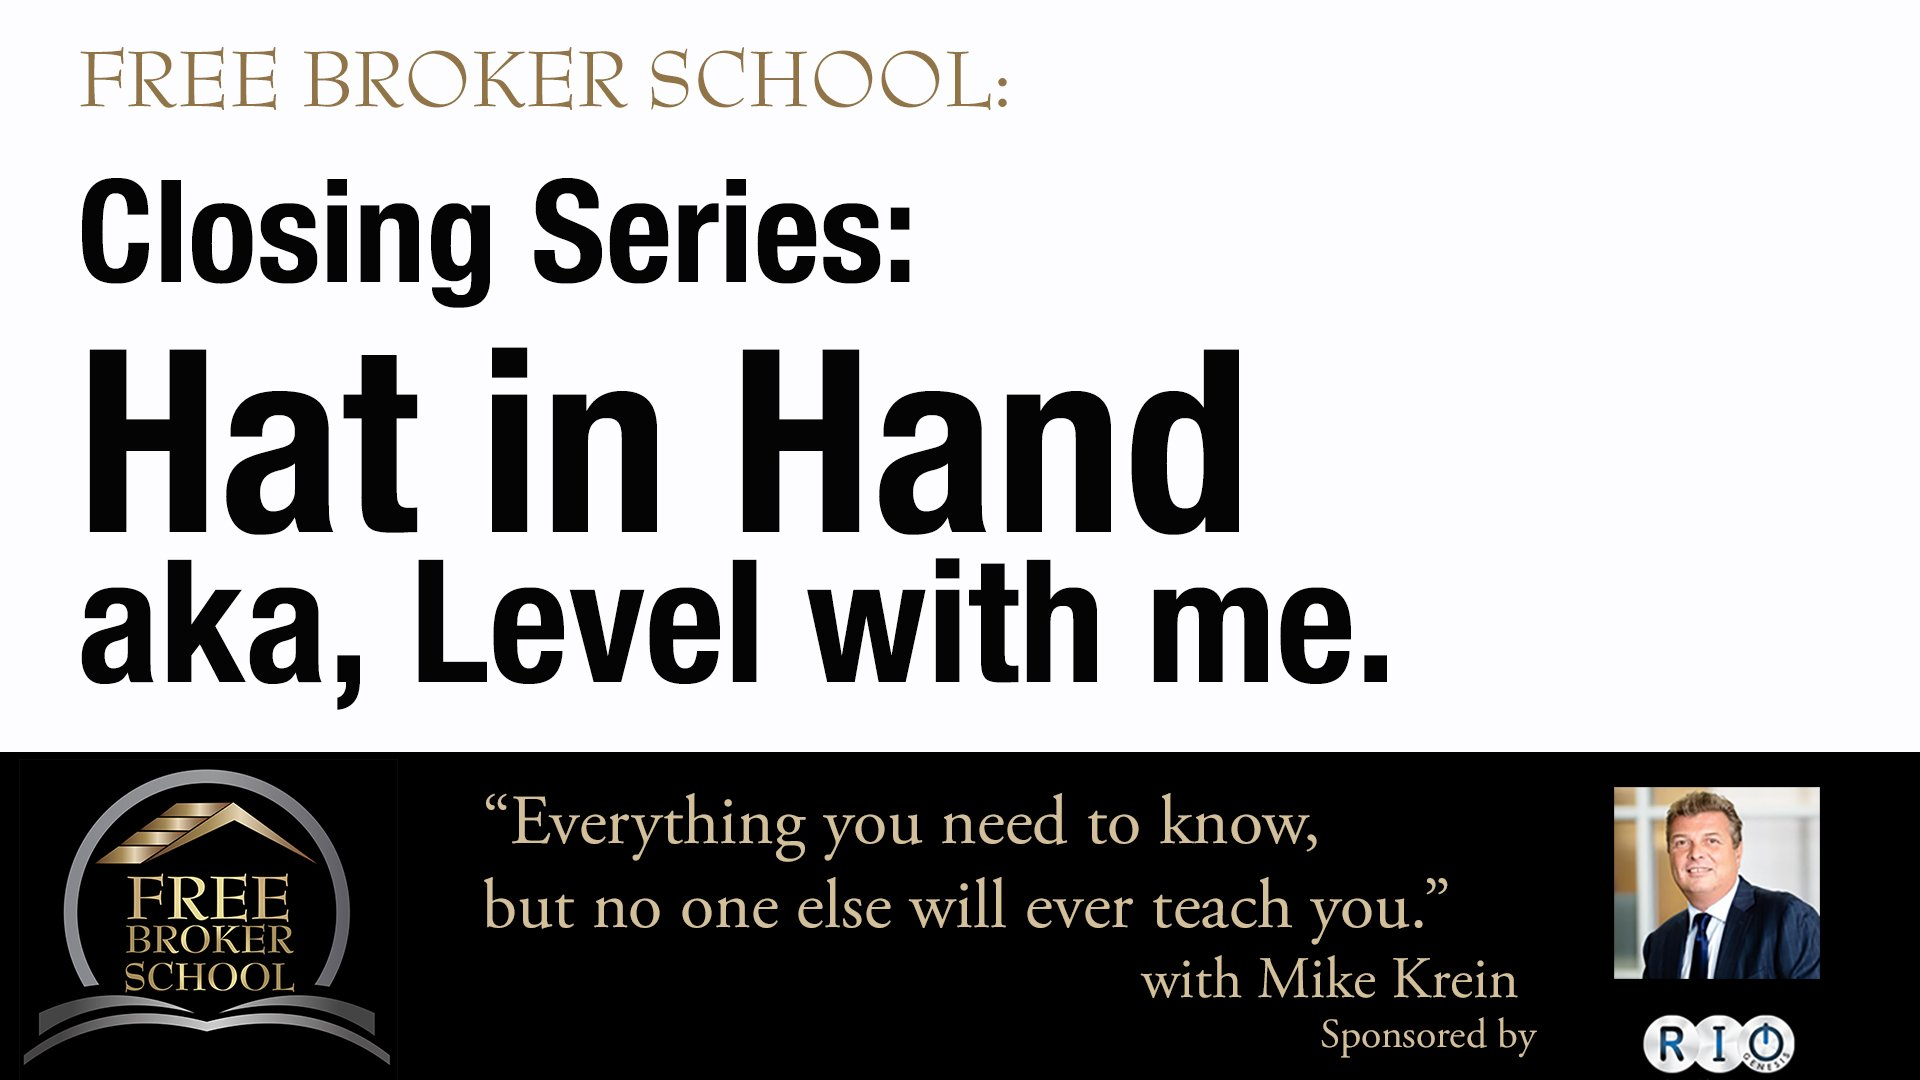 Free Broker School: Closing Series: Hat in Hand aka, Level with me.